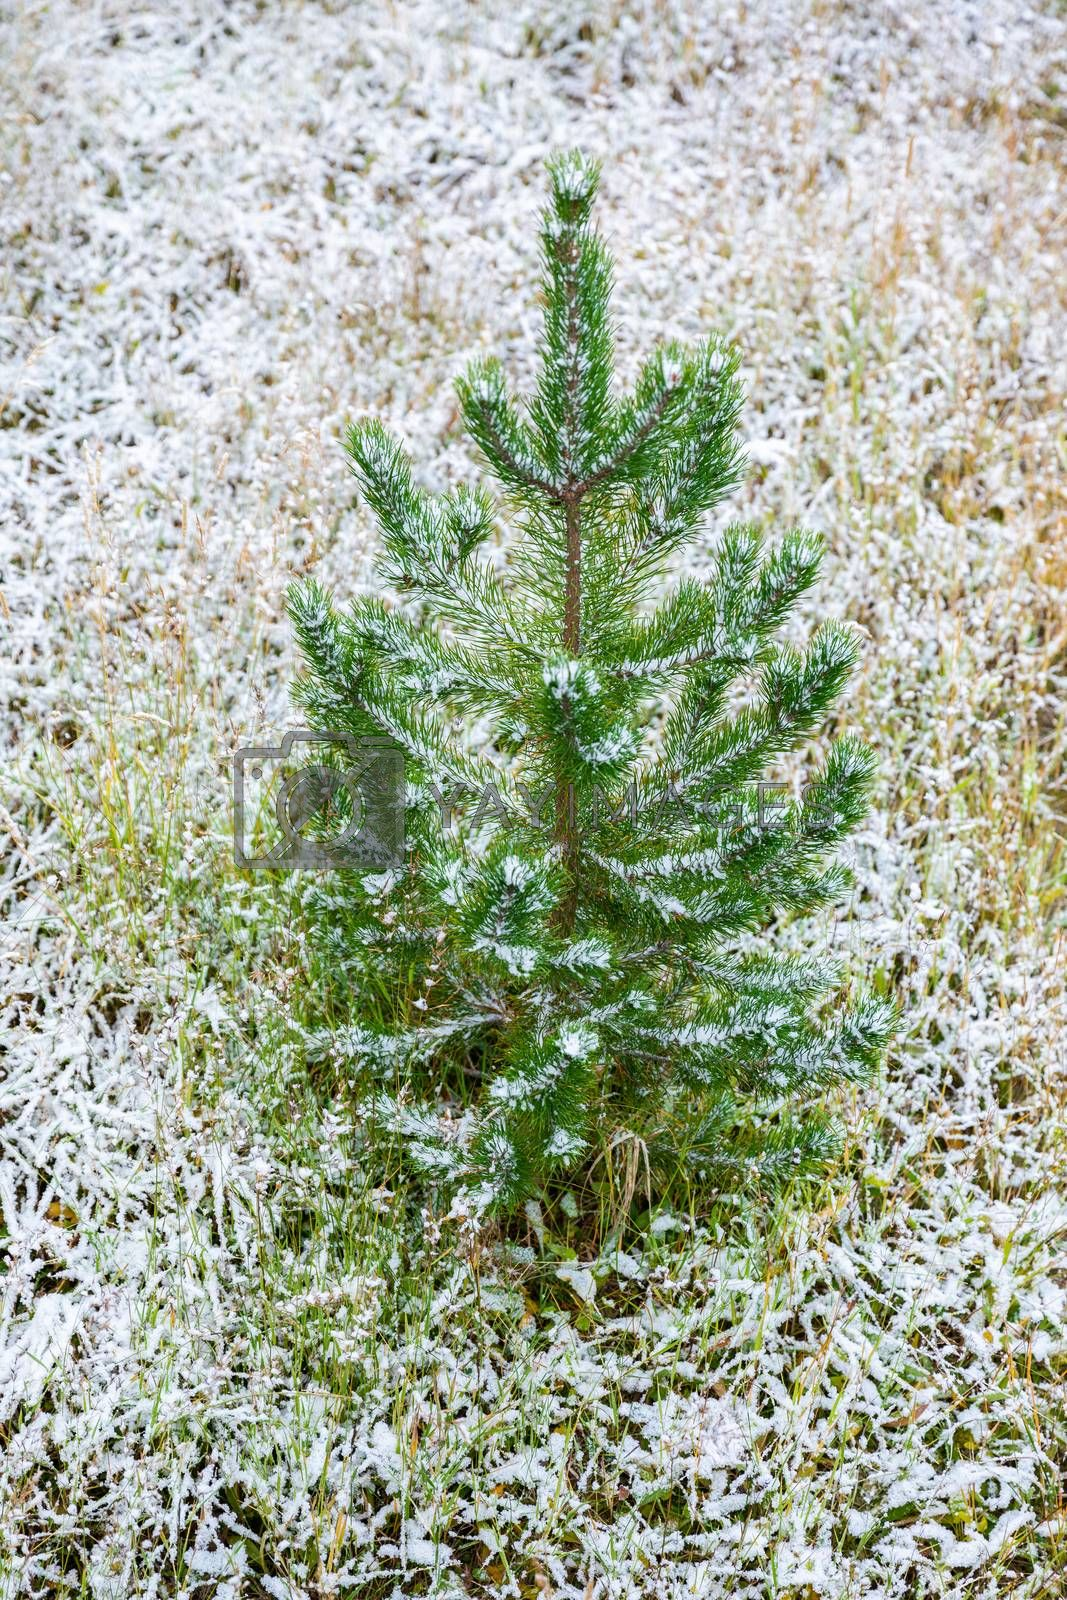 Small pine tree growing from geothermal heat ground of Yellowstone National Park which covering by snow in winter season.